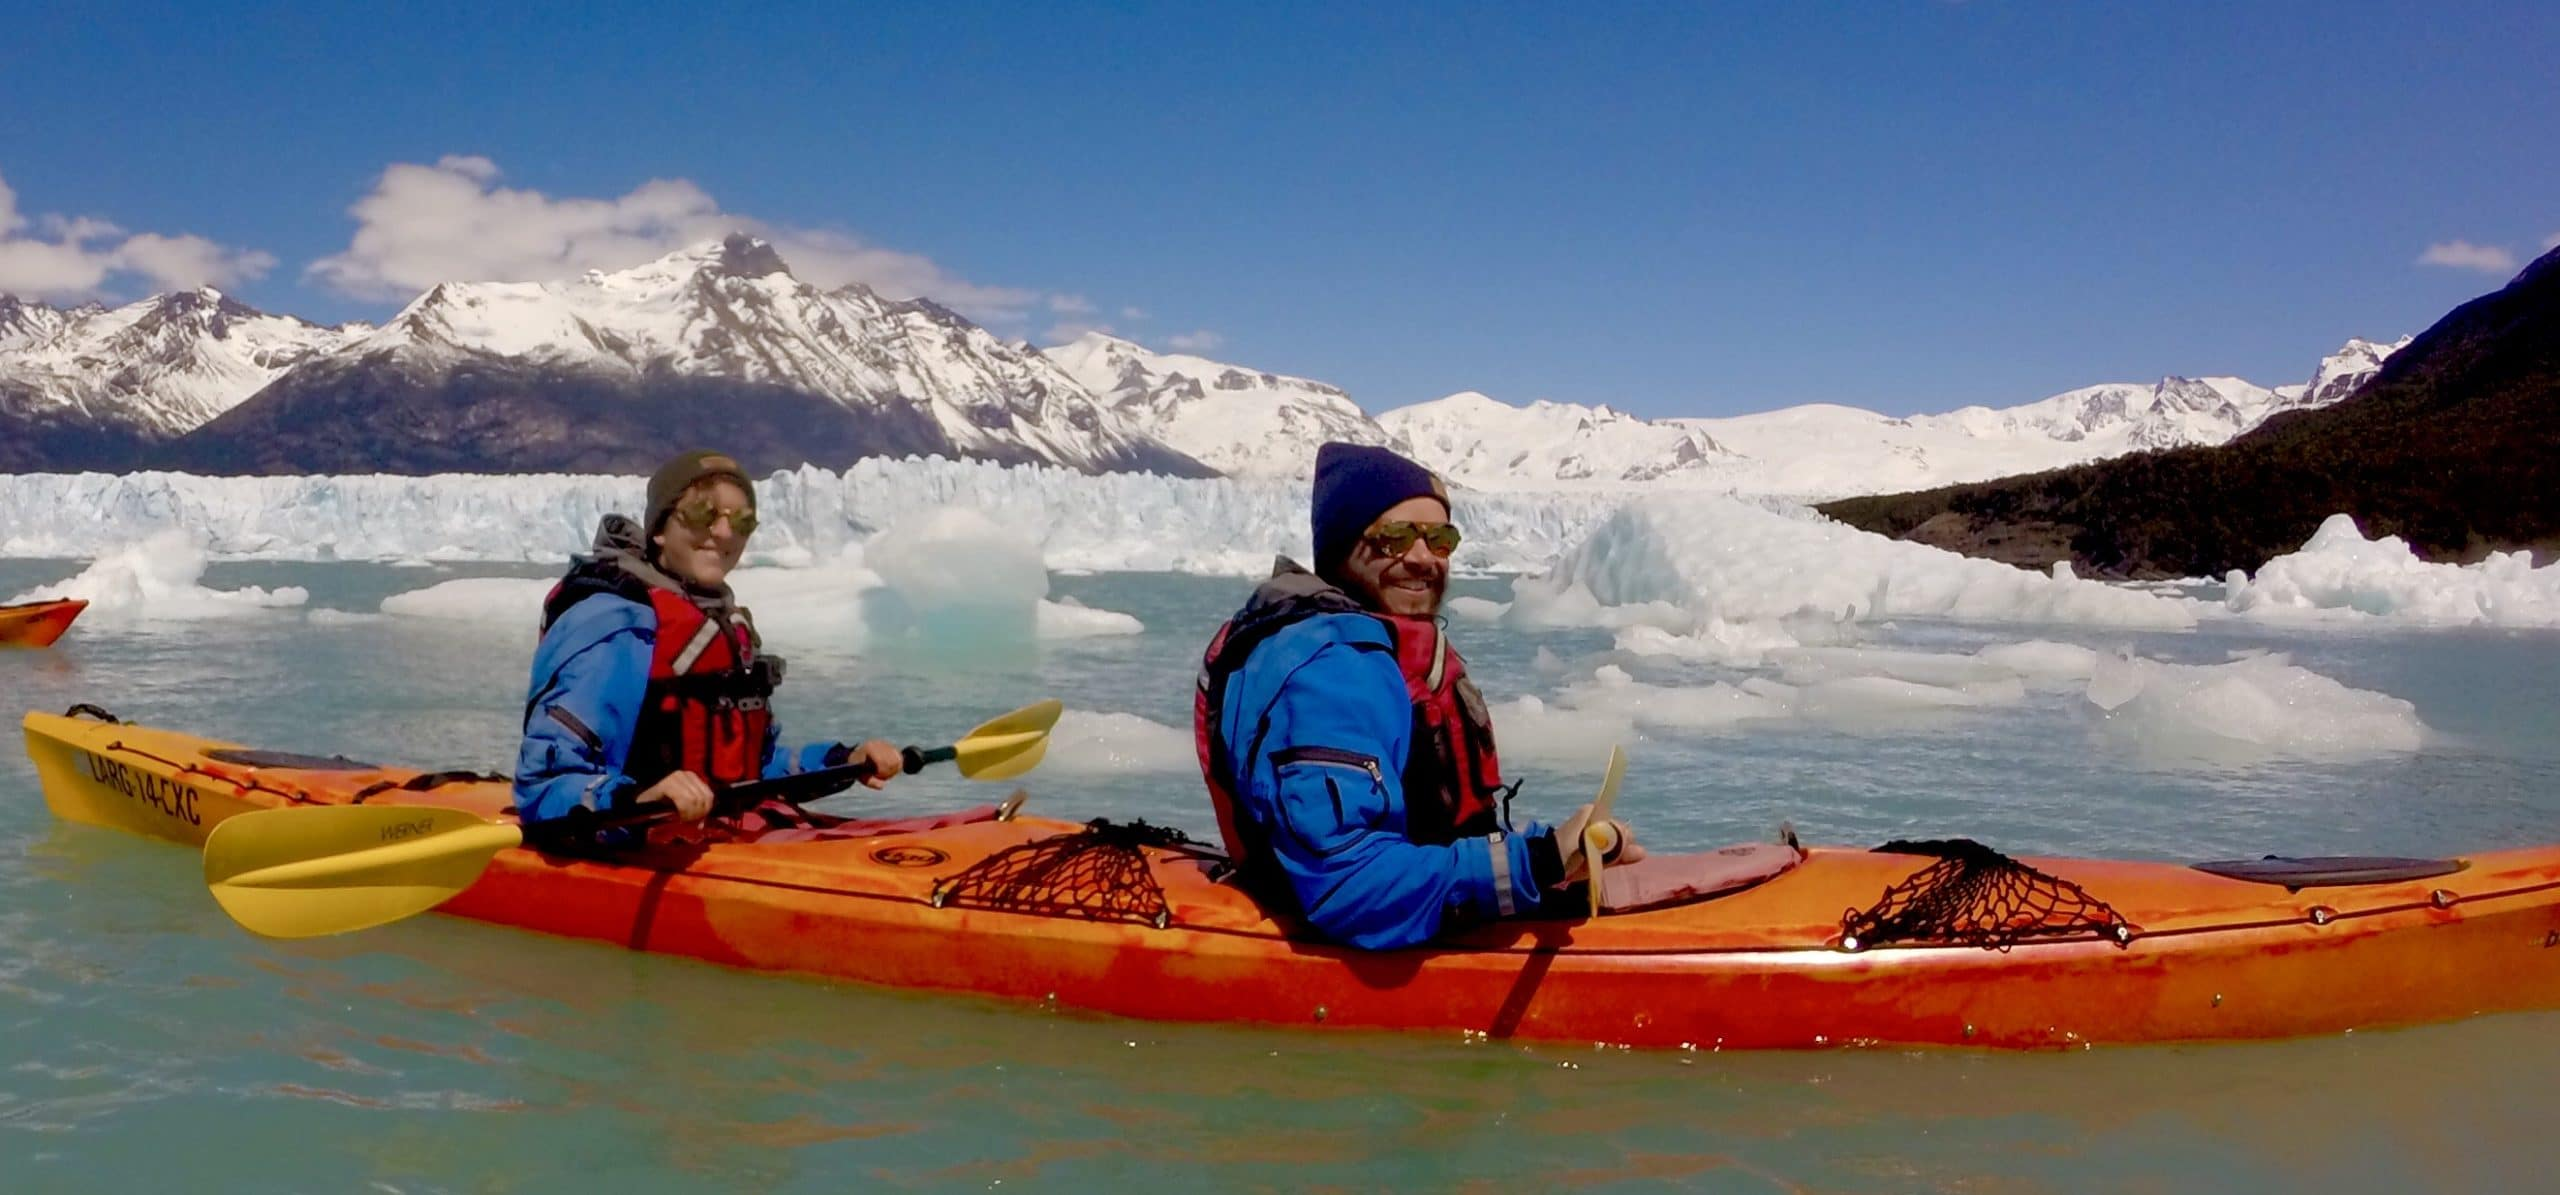 Myriam on the back and Pierre on the front of an orange kayak. They are dressed warmly and the water is icy with snowy mountains in the background.